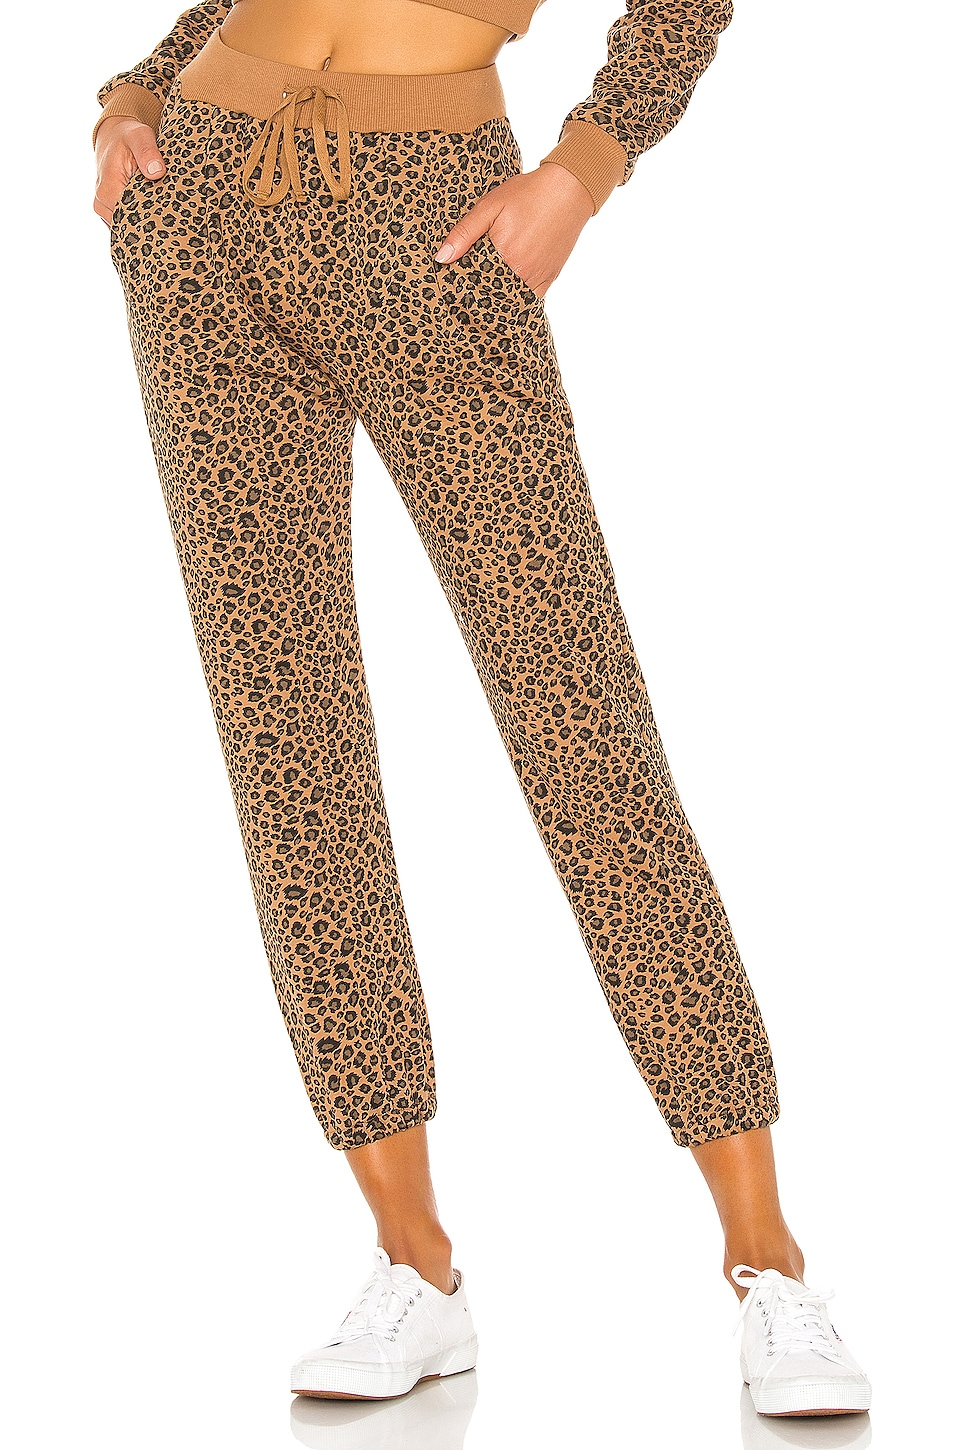 Lovers + Friends Kimber Sweatpants in Tan Leopard